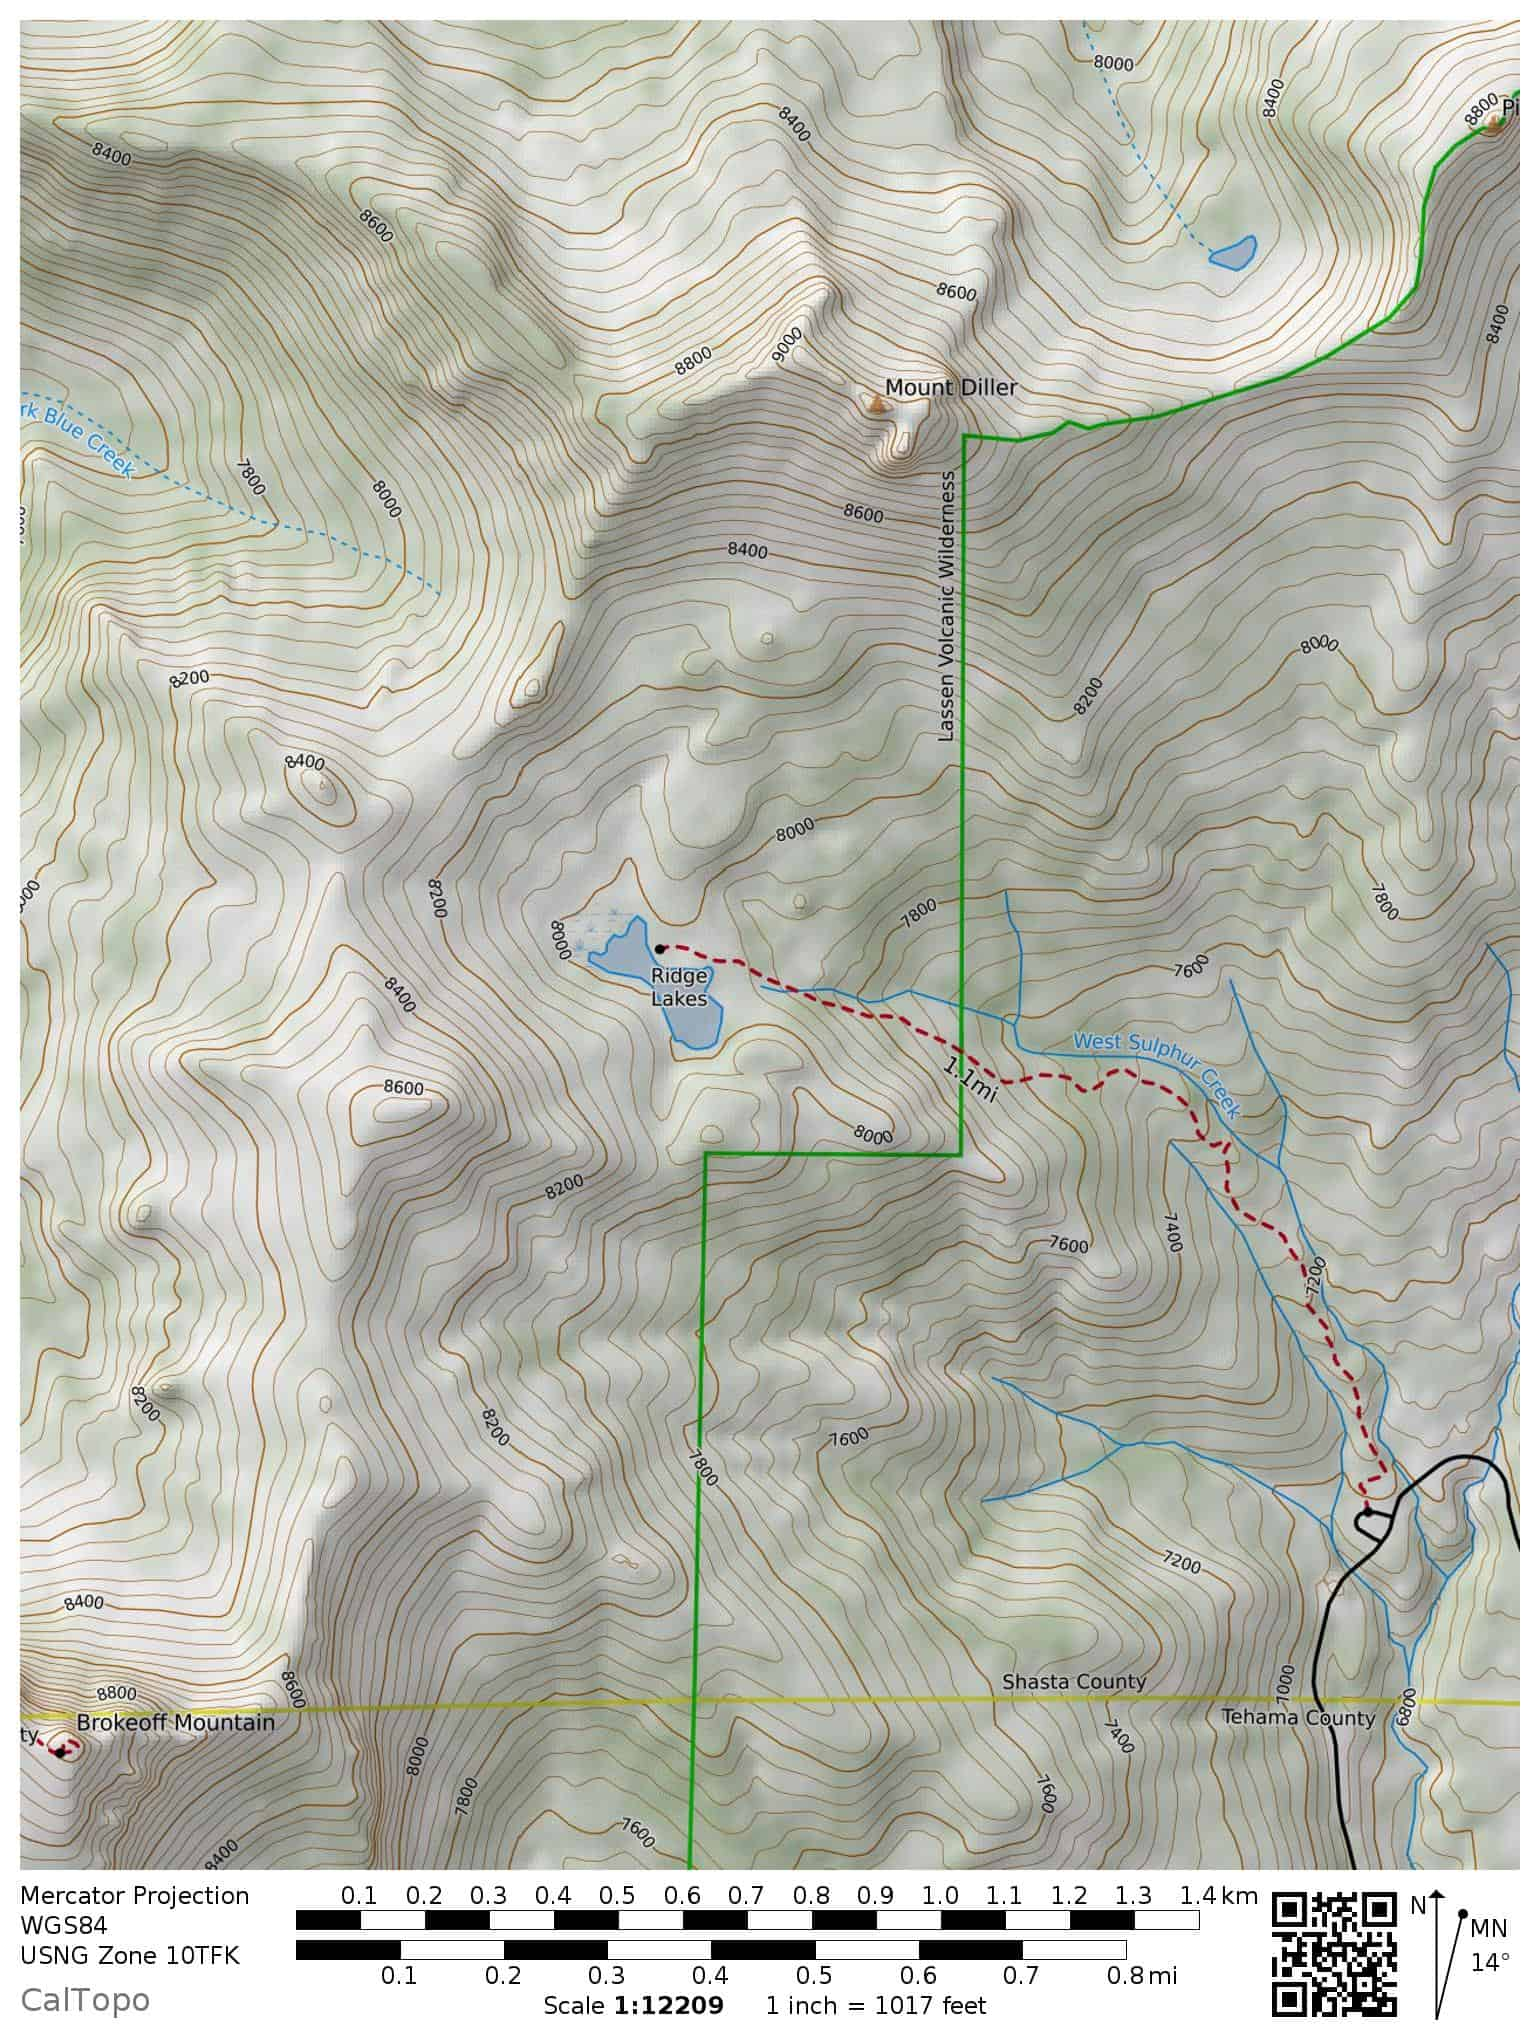 Ridge Lakes Trail Map, Lassen Volcanic National Park, with trailhead, Sulphur Works, Brokeoff Peak, Mount Diller